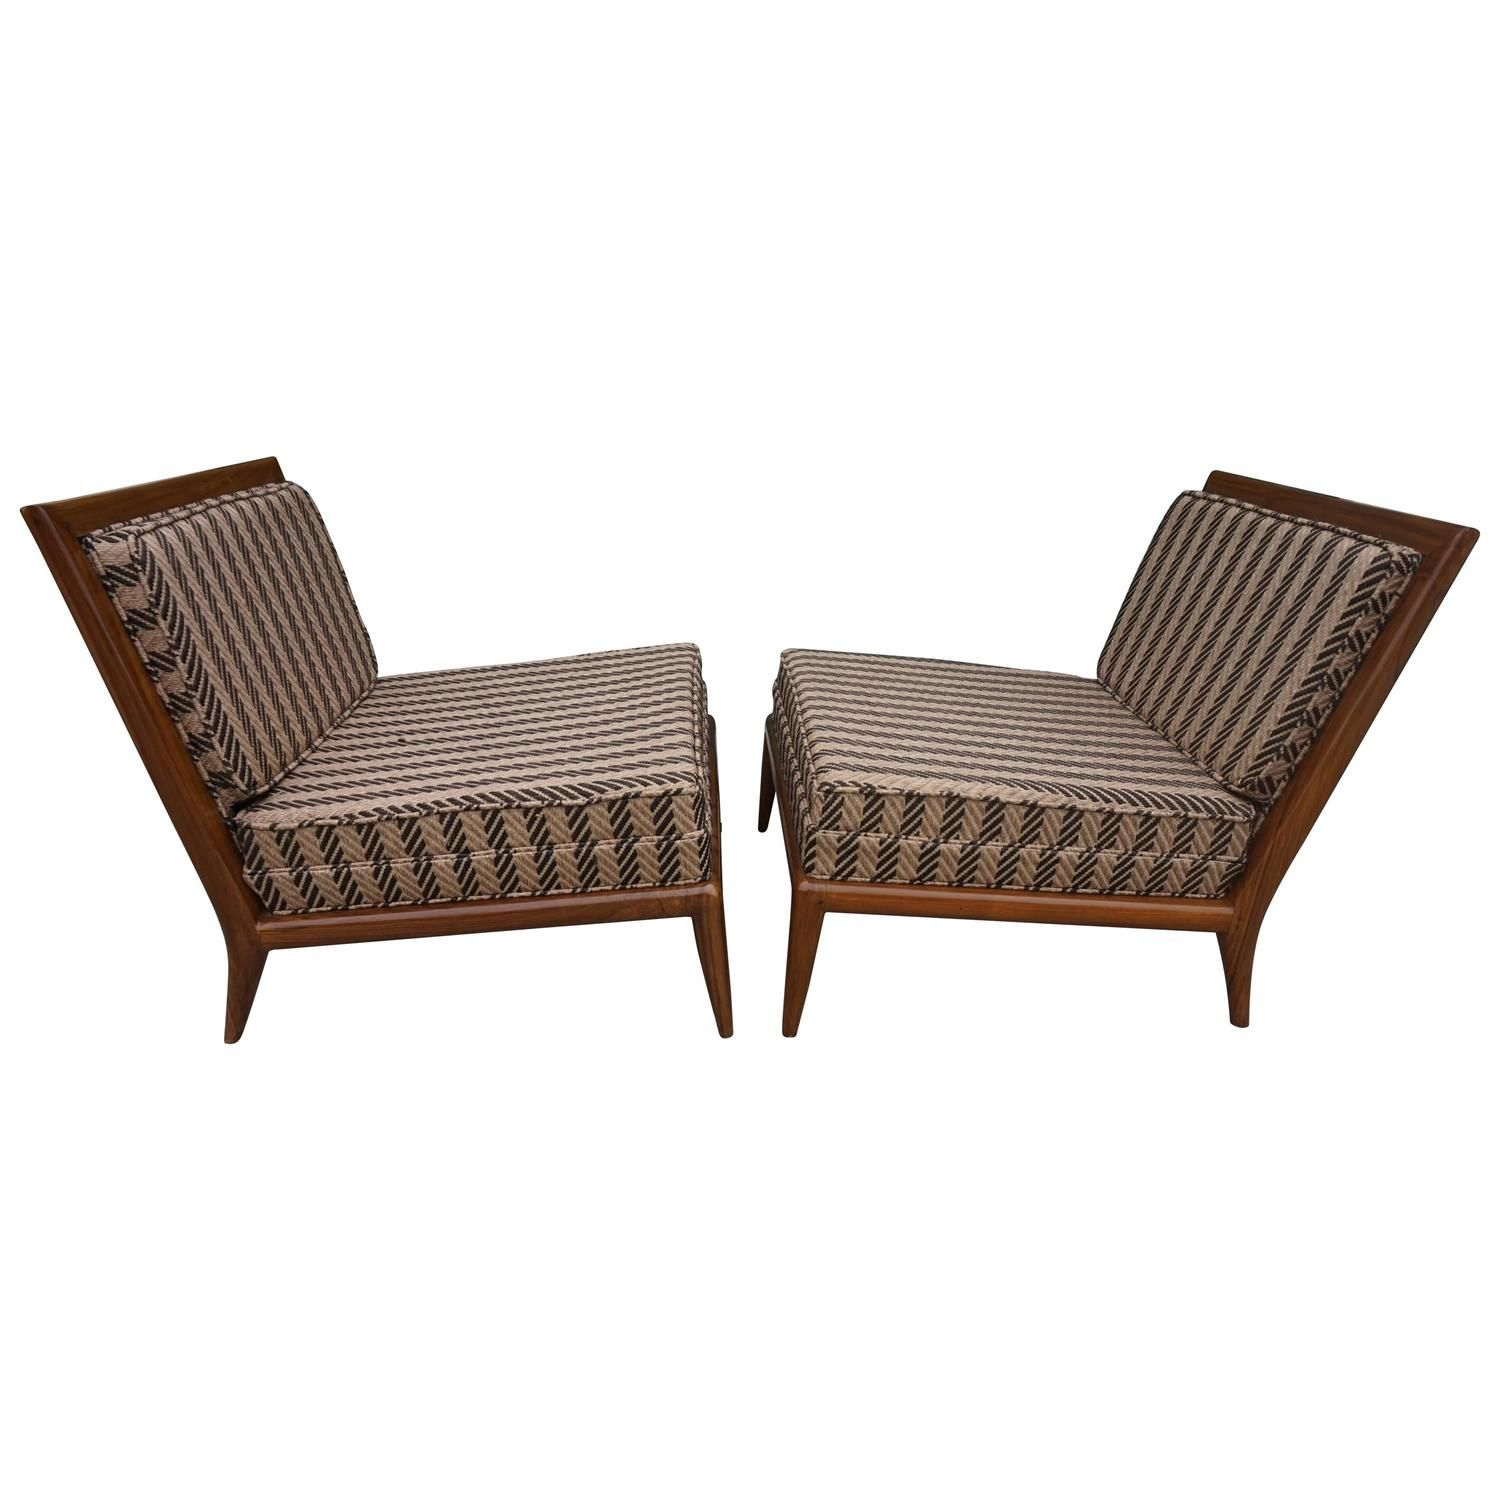 Swell Pair Of Robsjohn Gibbings Style Slipper Lounge Chairs Mid Theyellowbook Wood Chair Design Ideas Theyellowbookinfo